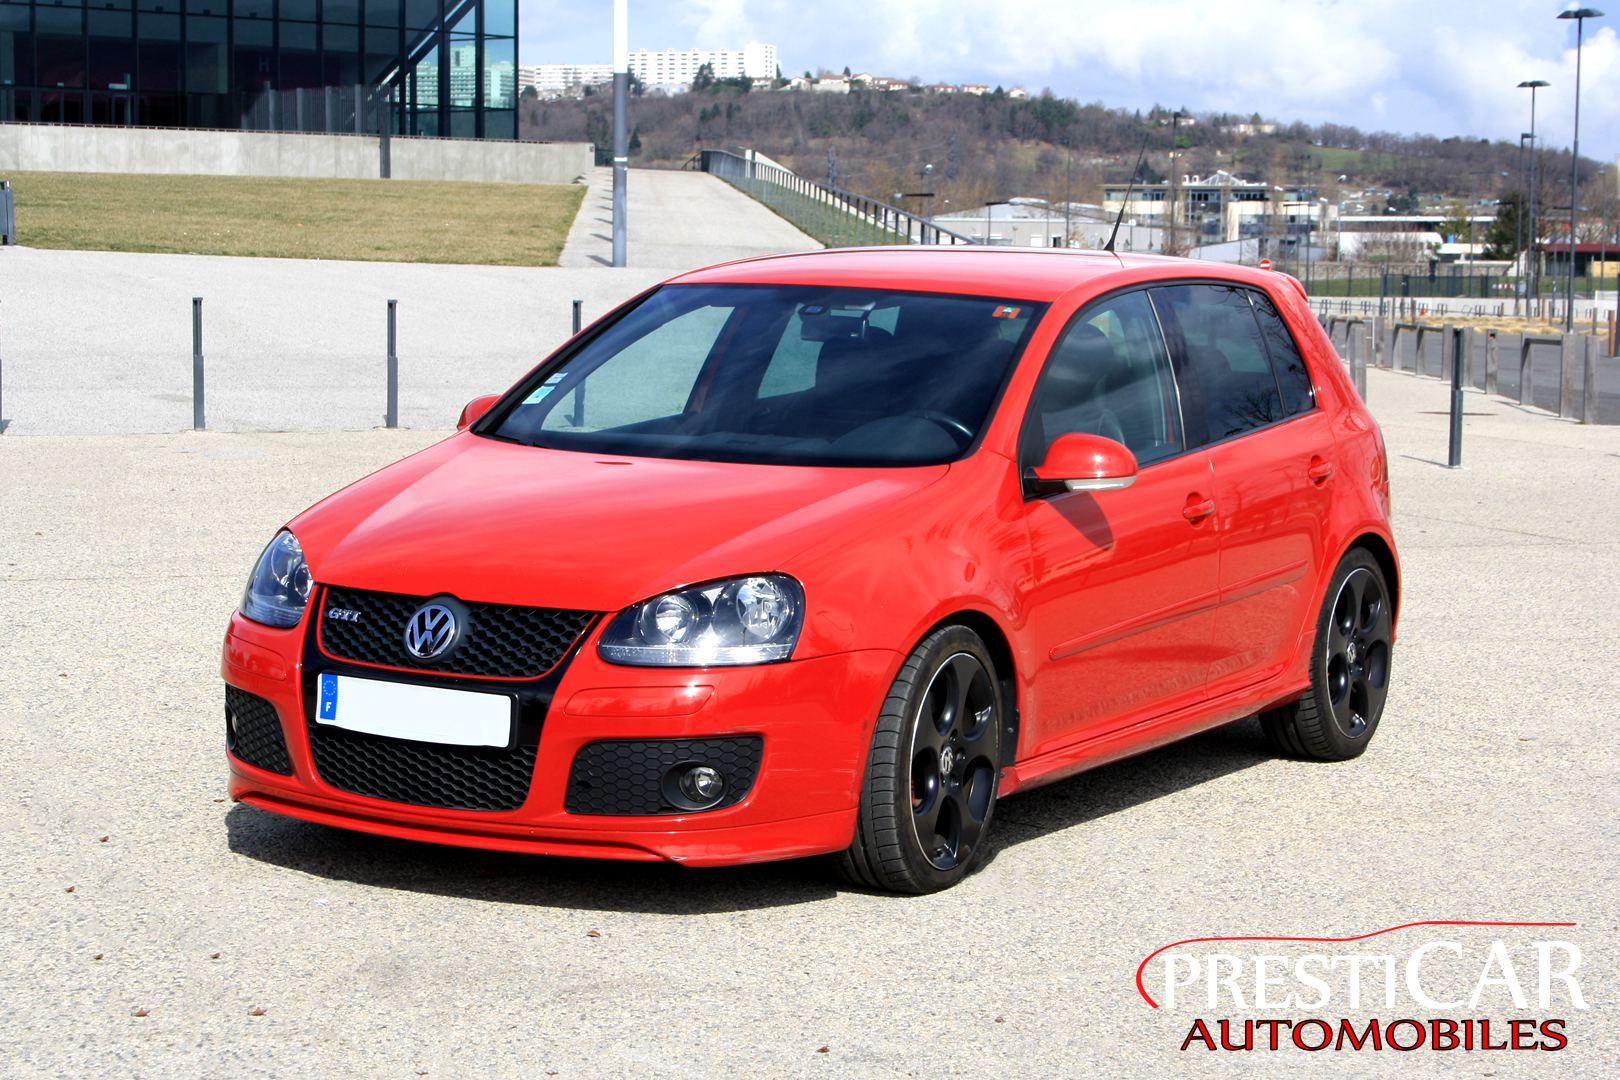 volkswagen golf 5 2 0 tfsi 230 gti edition 30 presticar automobiles. Black Bedroom Furniture Sets. Home Design Ideas